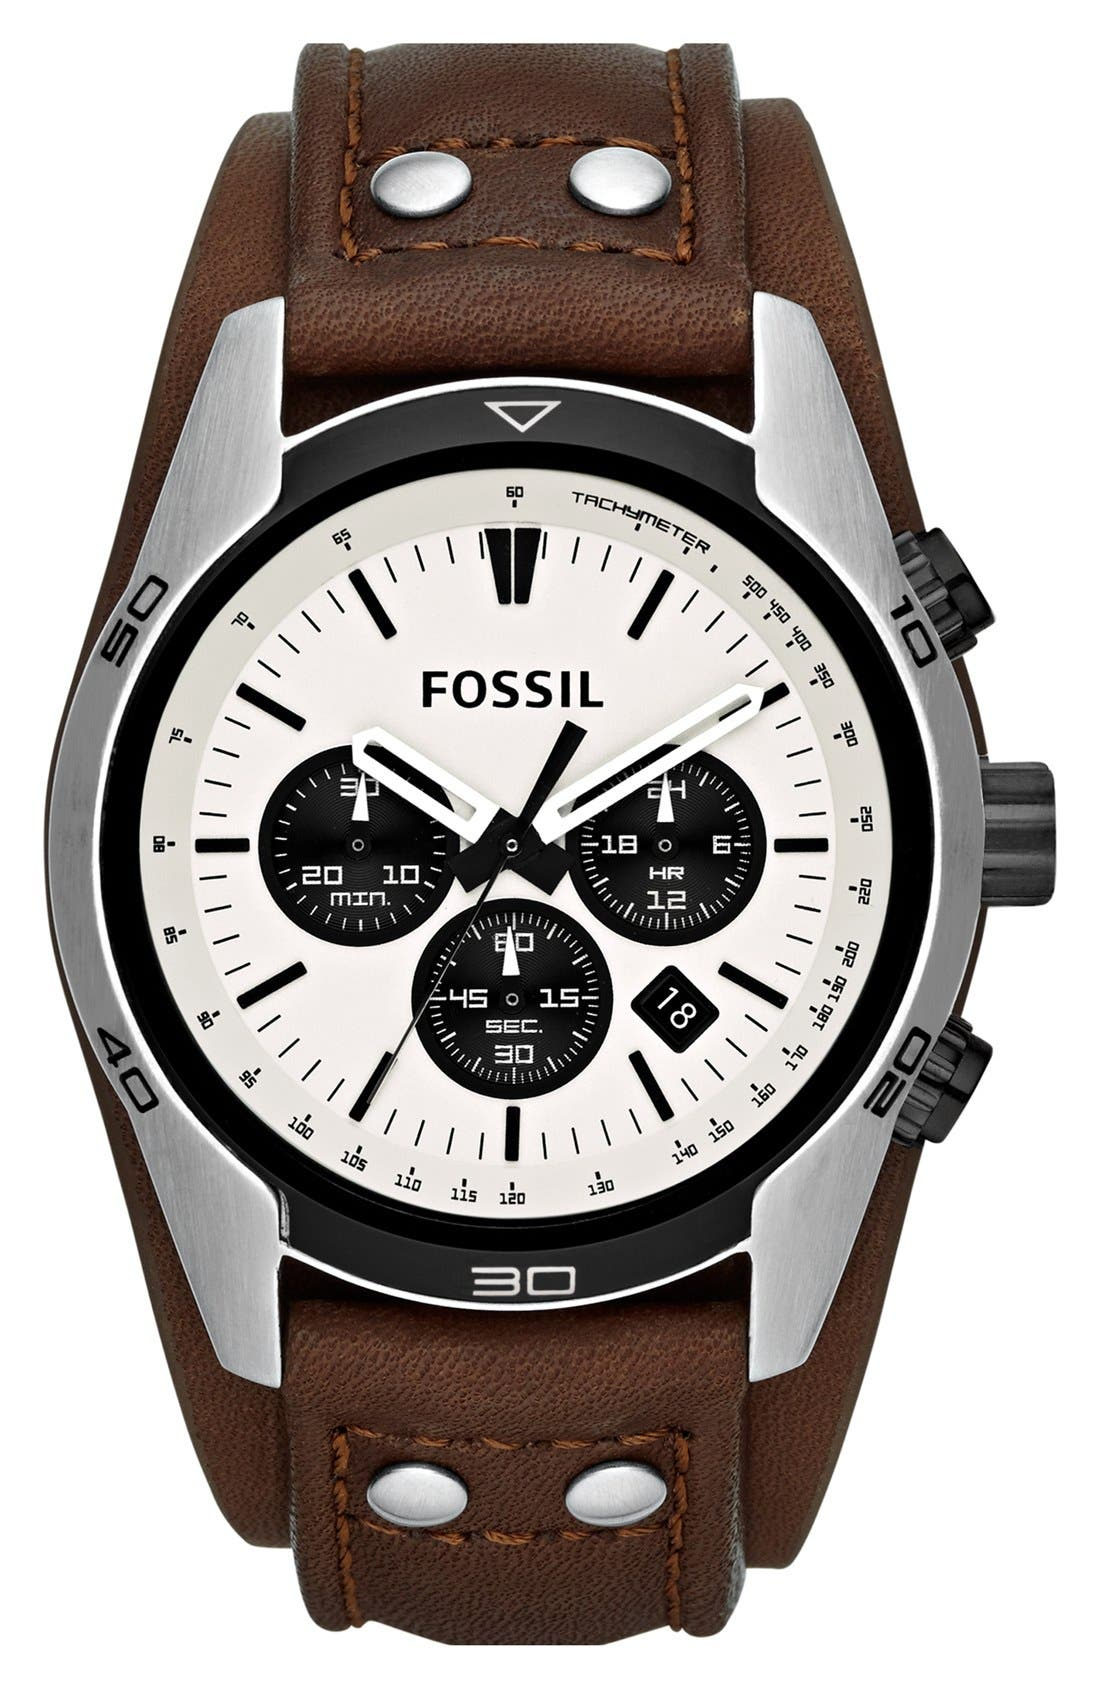 Main Image - Fossil 'Sport' Chronograph Leather Cuff Watch, 44mm